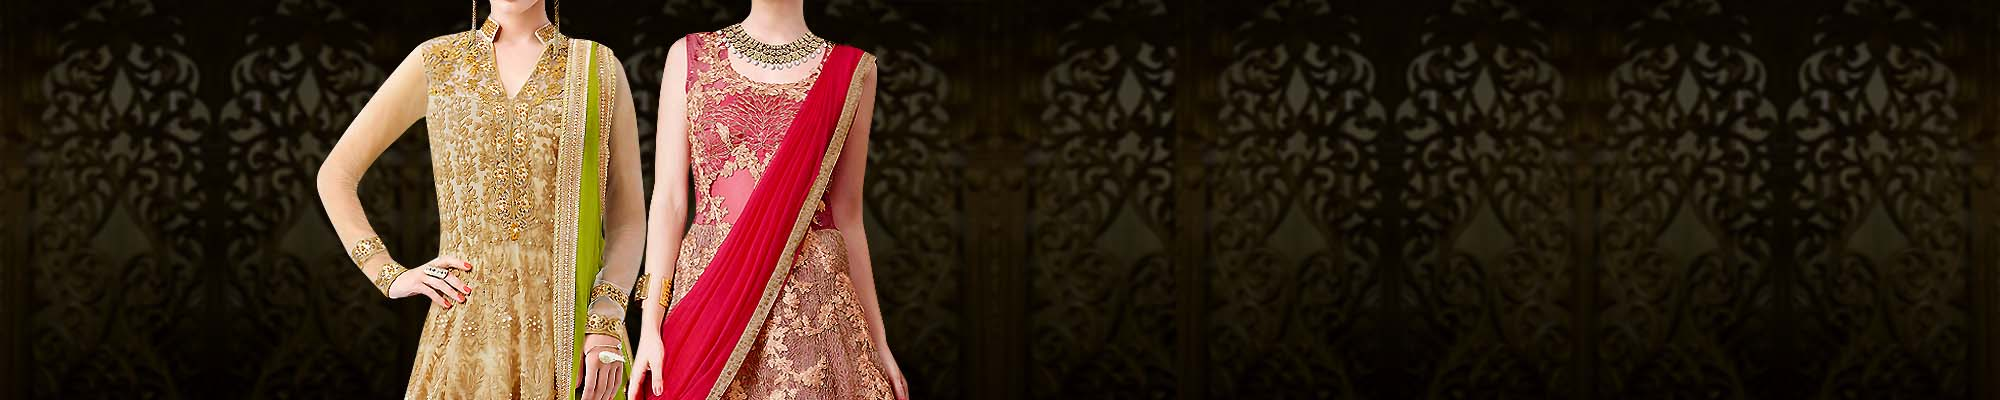 Indian Designer Salwar Kameez Suits for Women